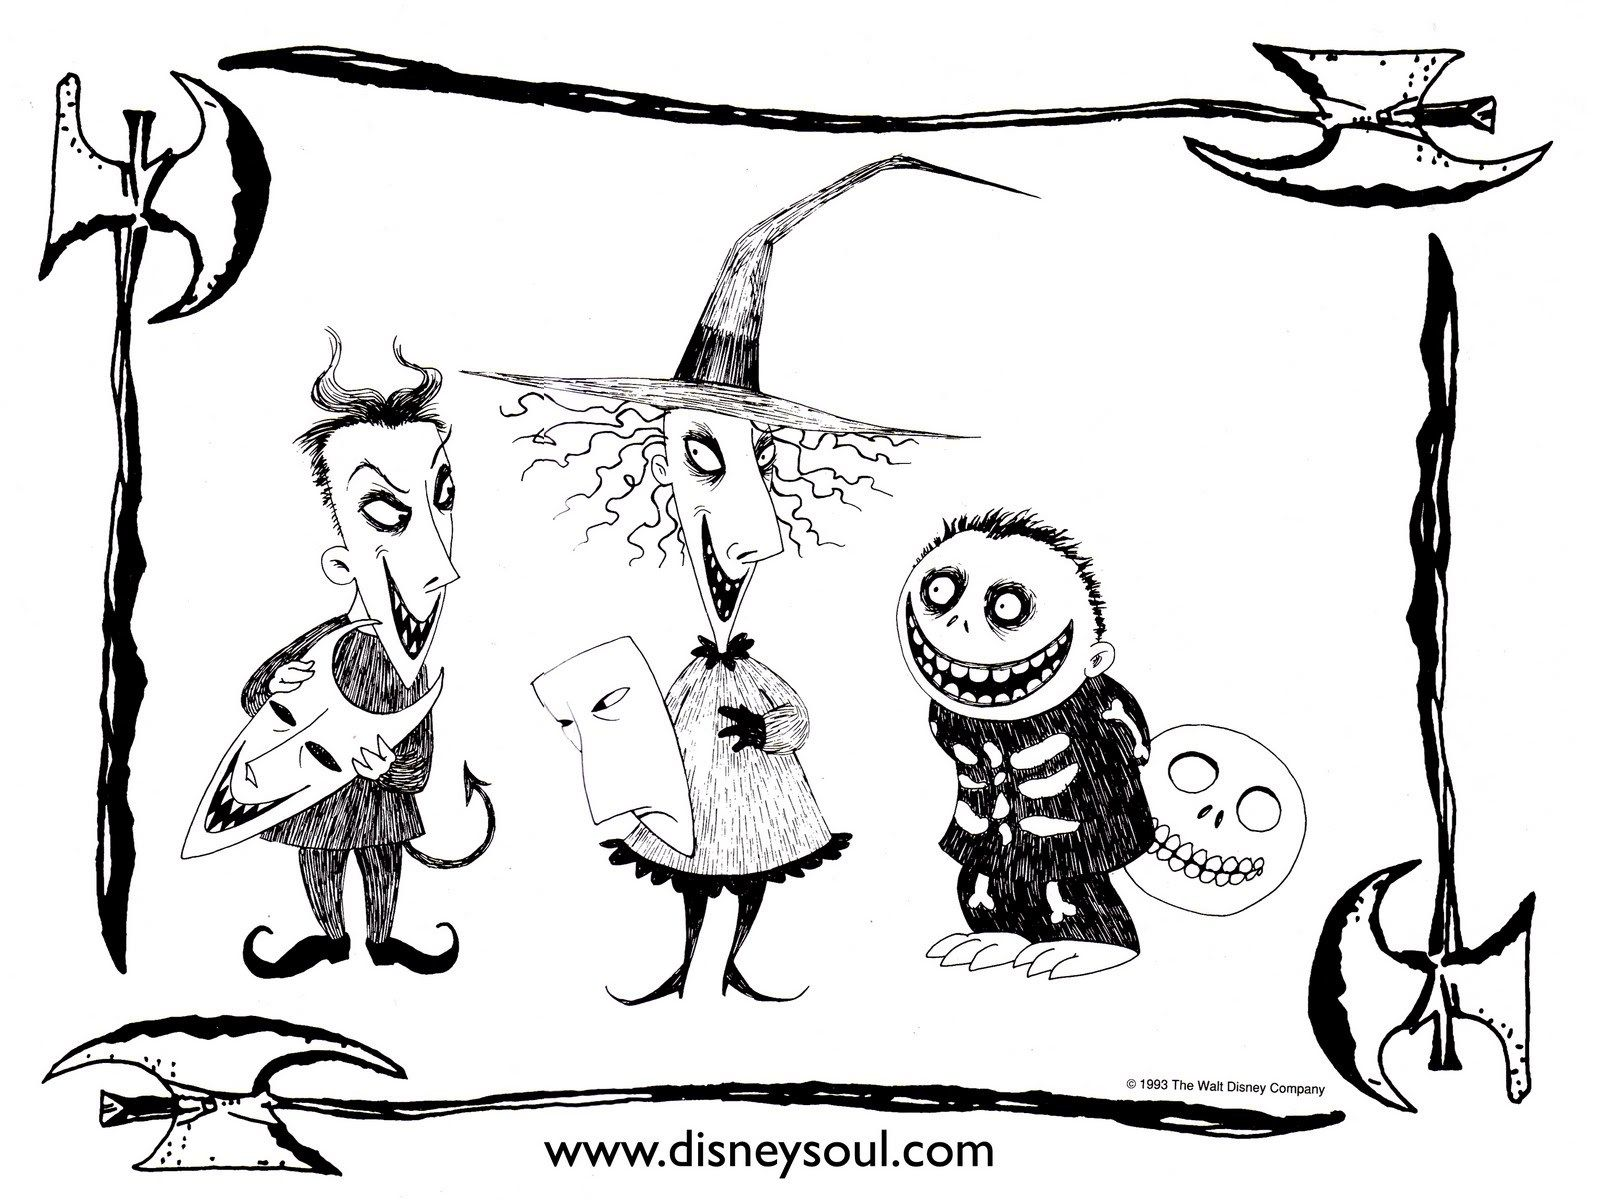 Nightmare Before Christmas Coloring Page - Coloring Home | 1200x1600